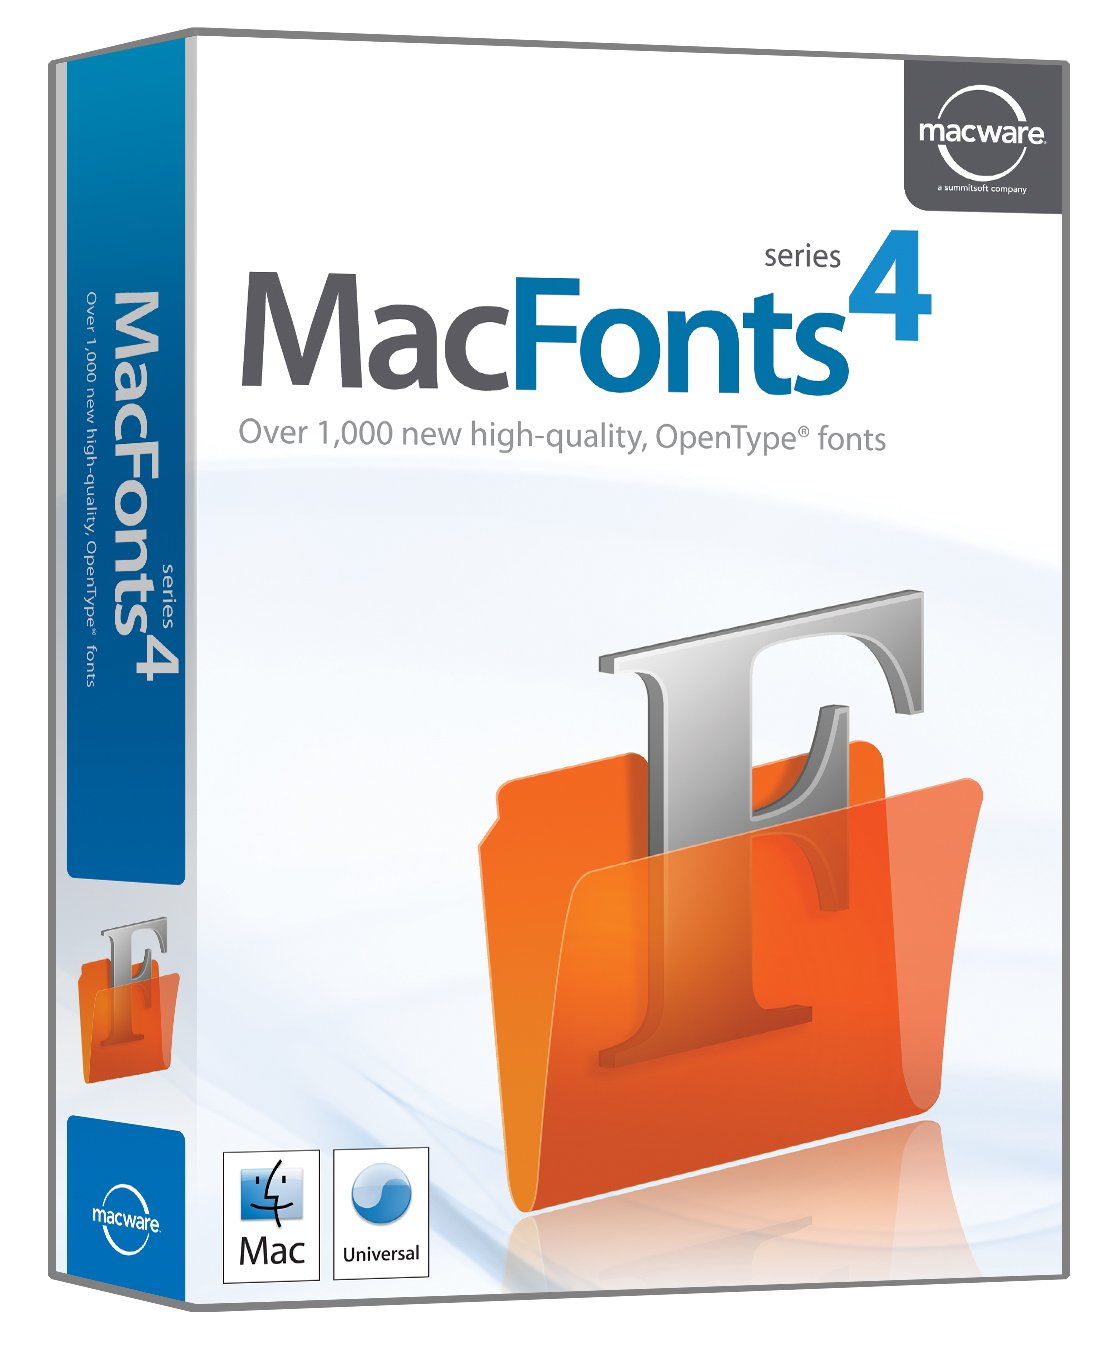 MacFonts Series 4 by Macware